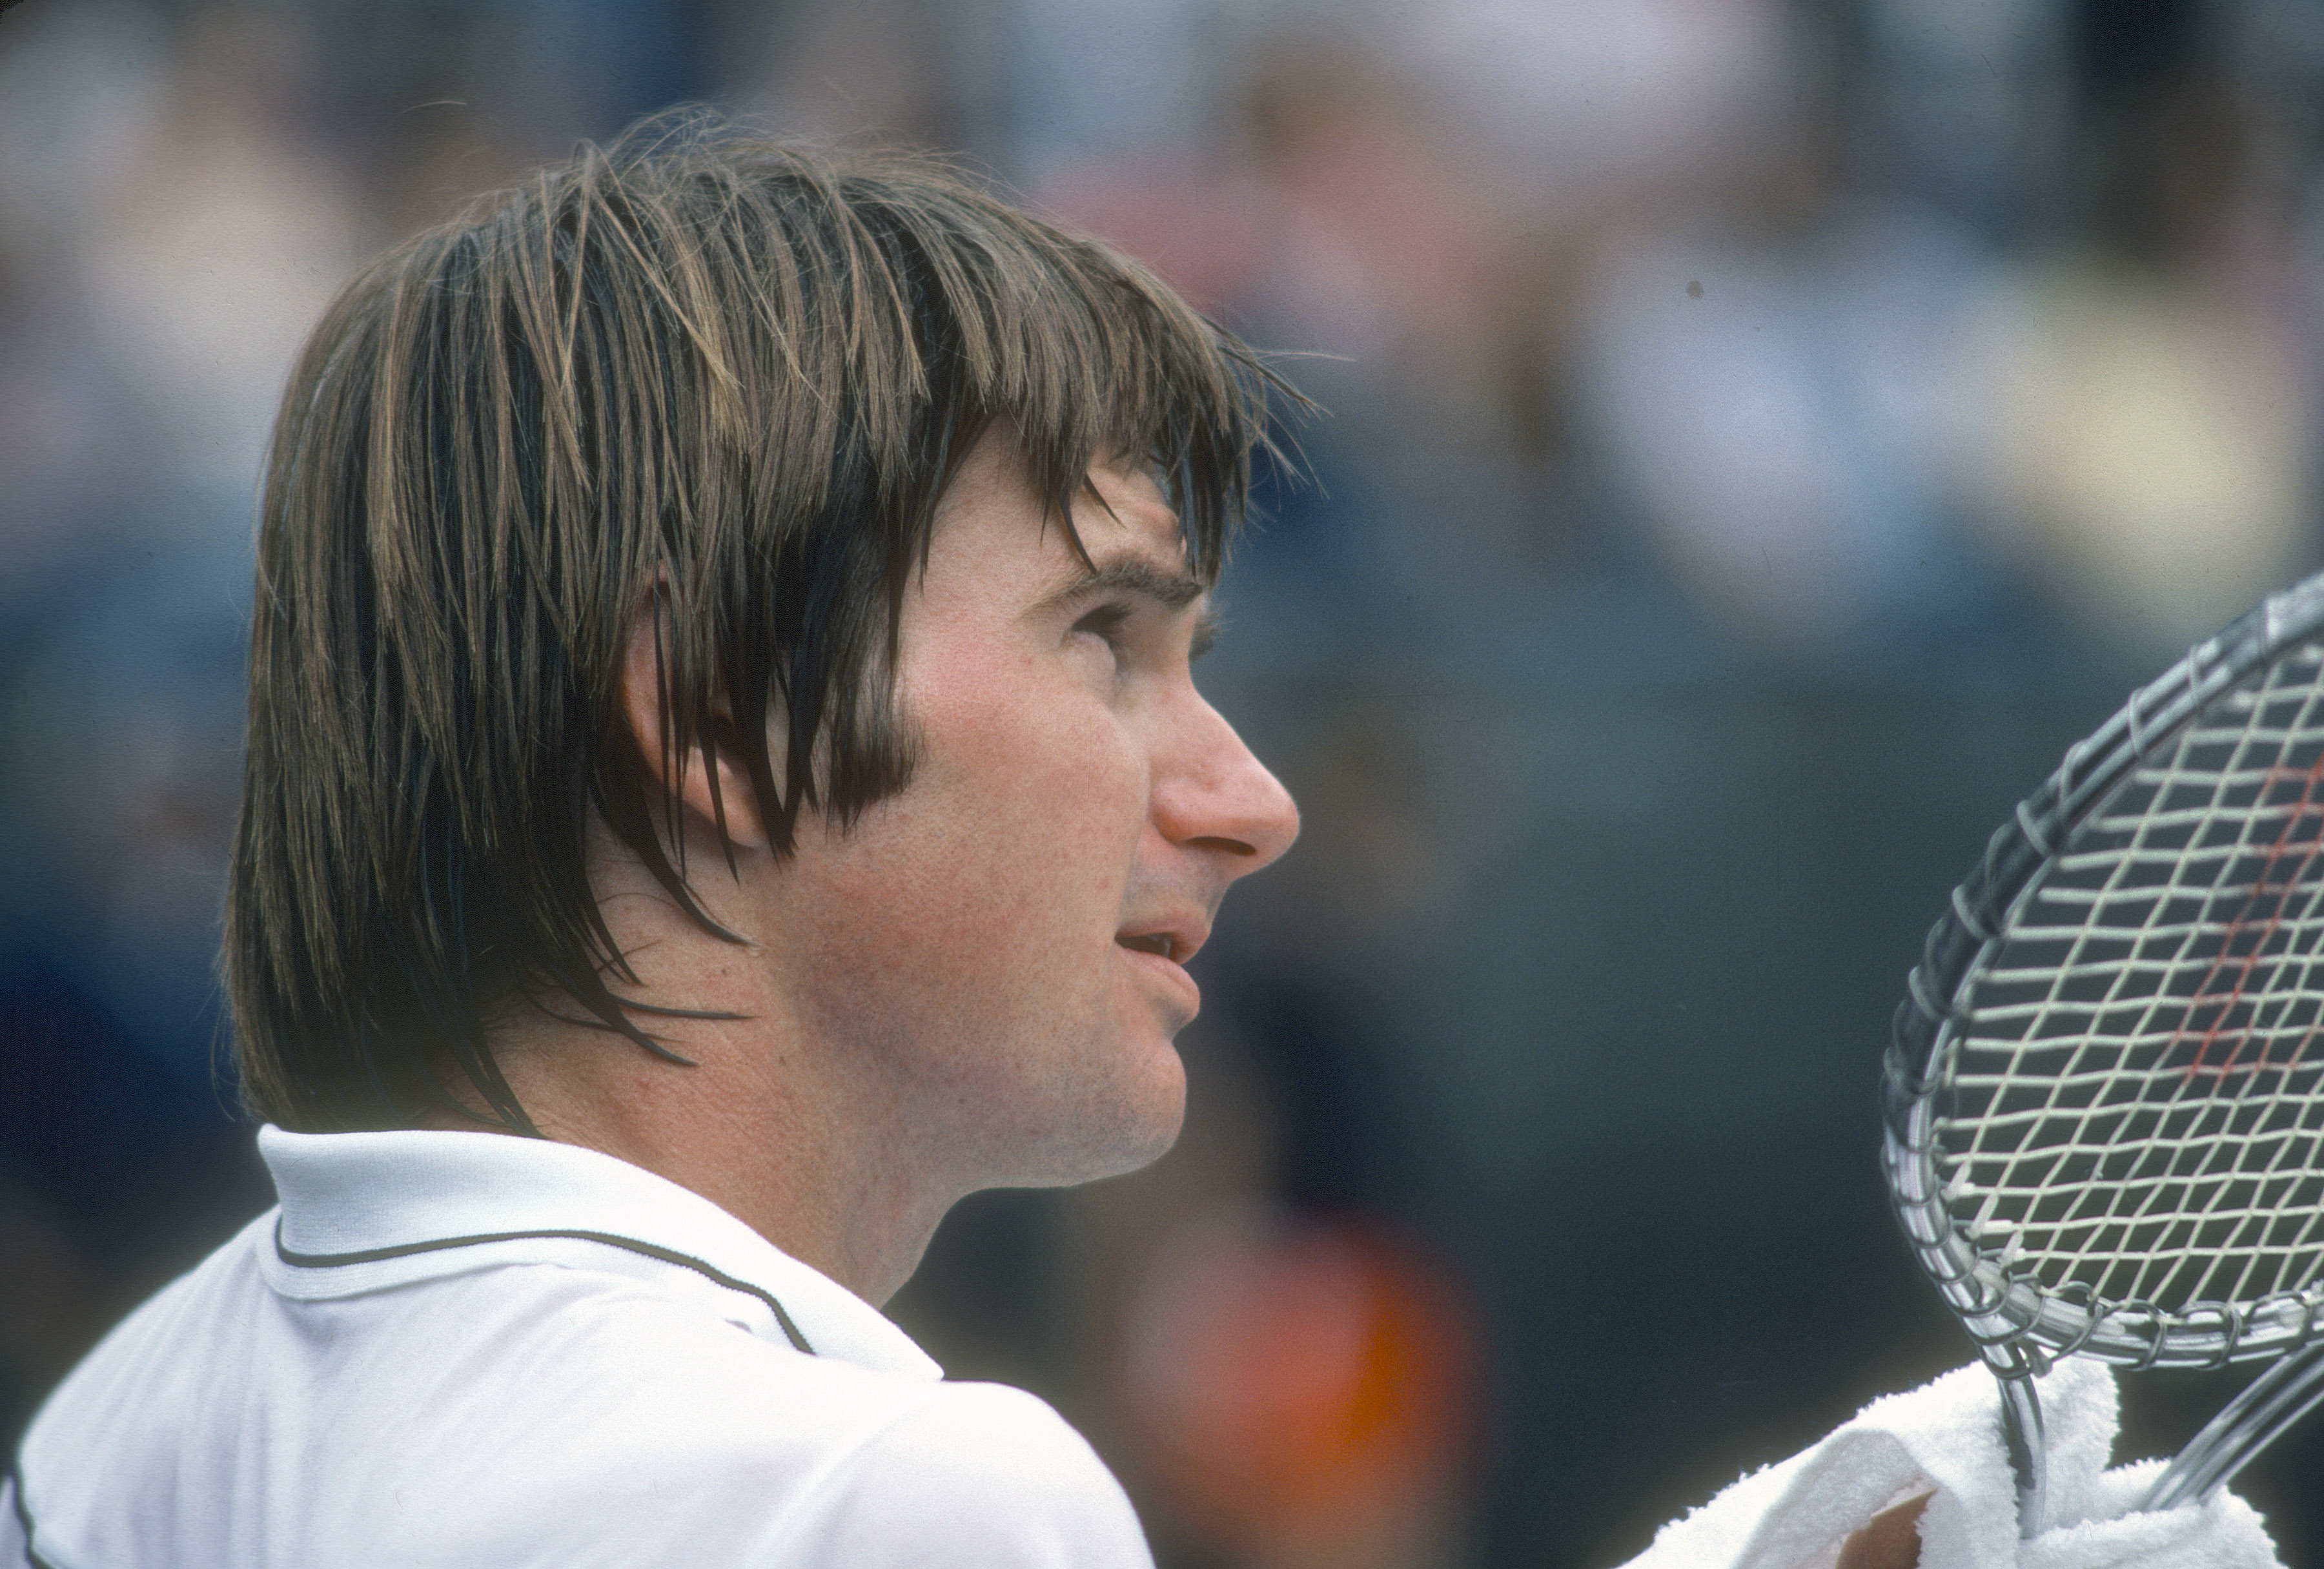 Jimmy Connors looks on in between games during the Men's 1981 US Open Tennis Championships